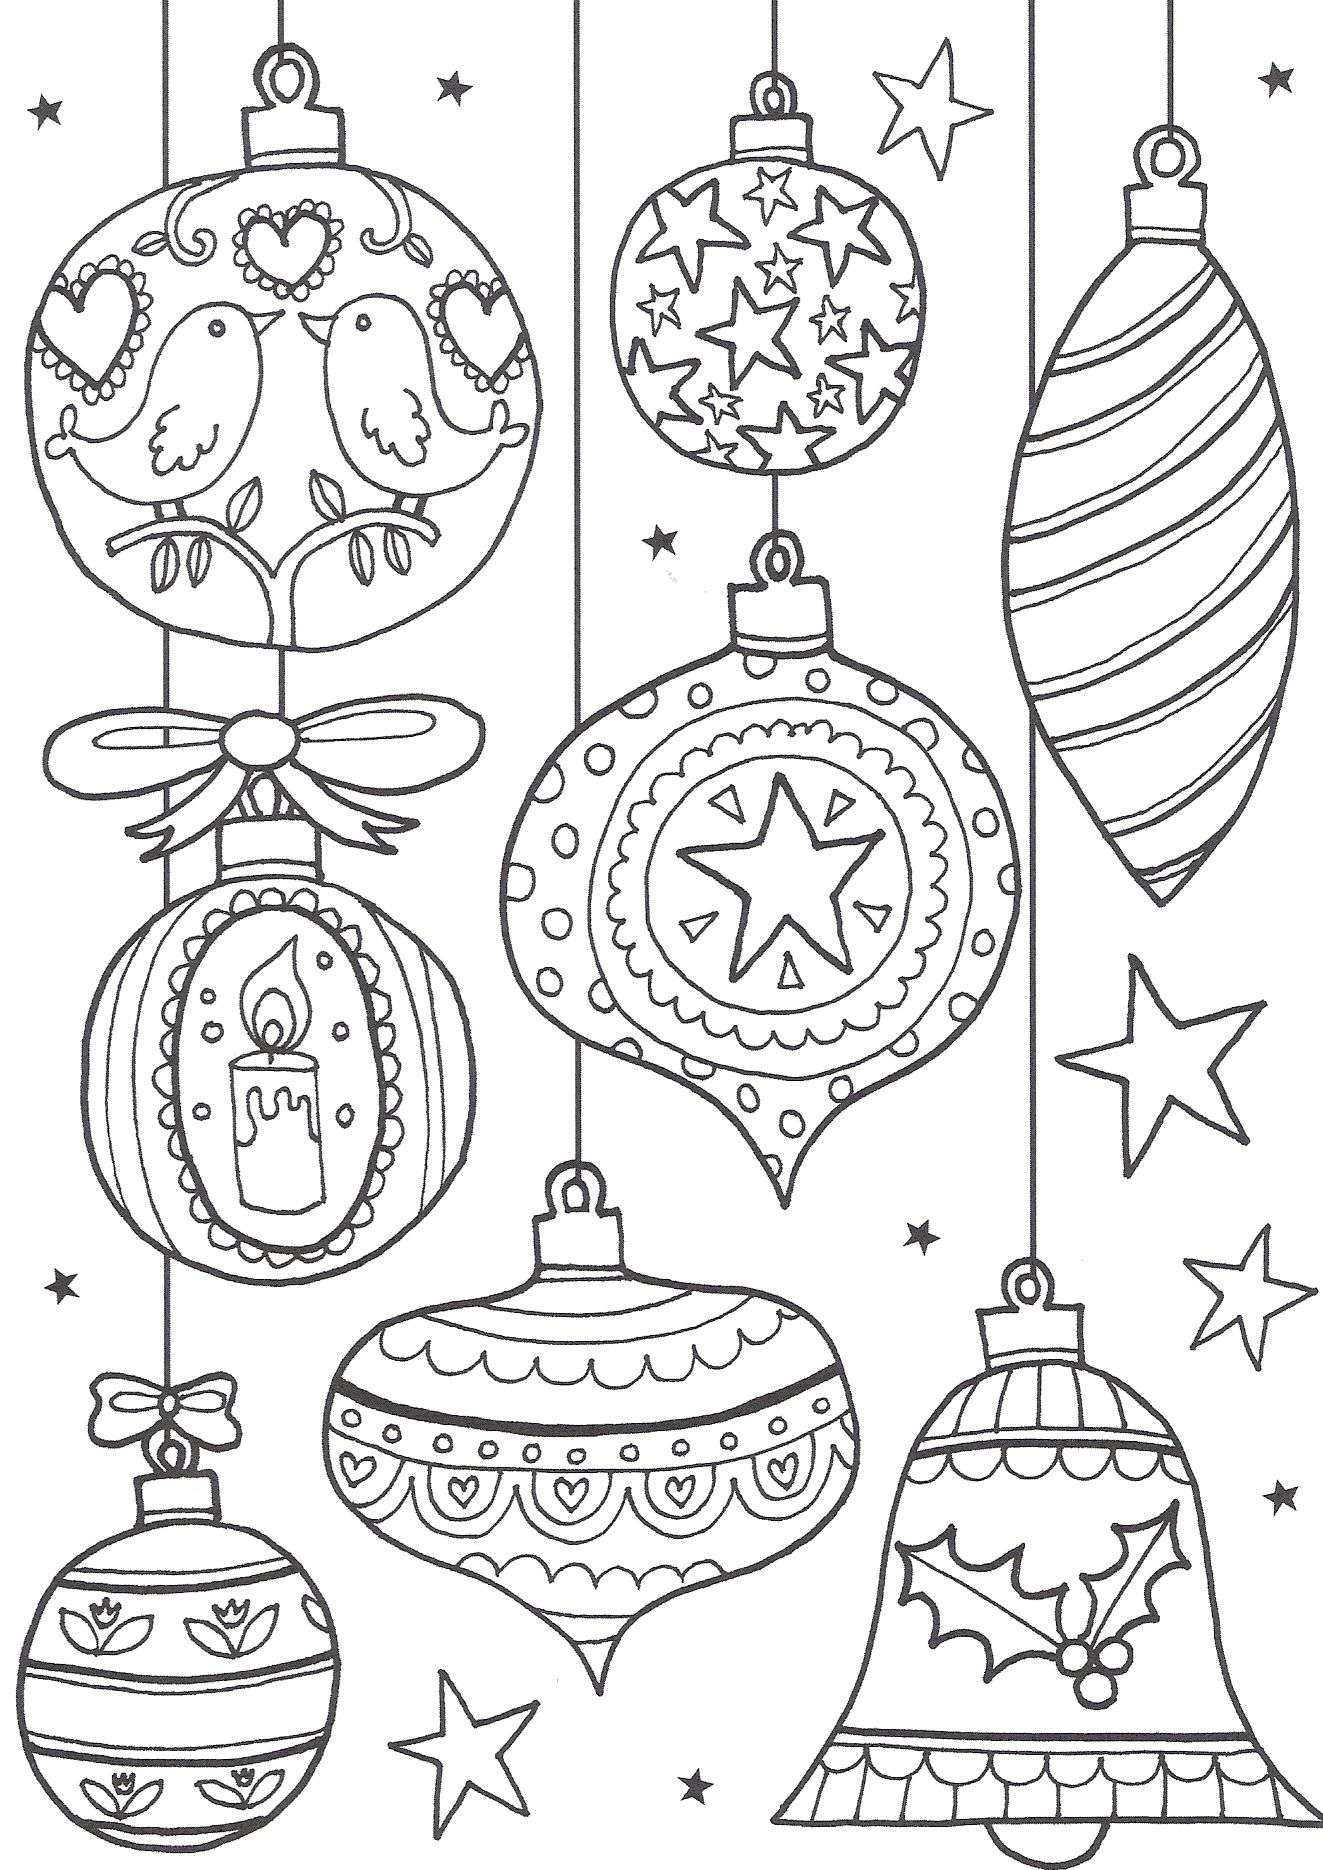 Christmas Coloring Pages For Elementary Students With School Printable